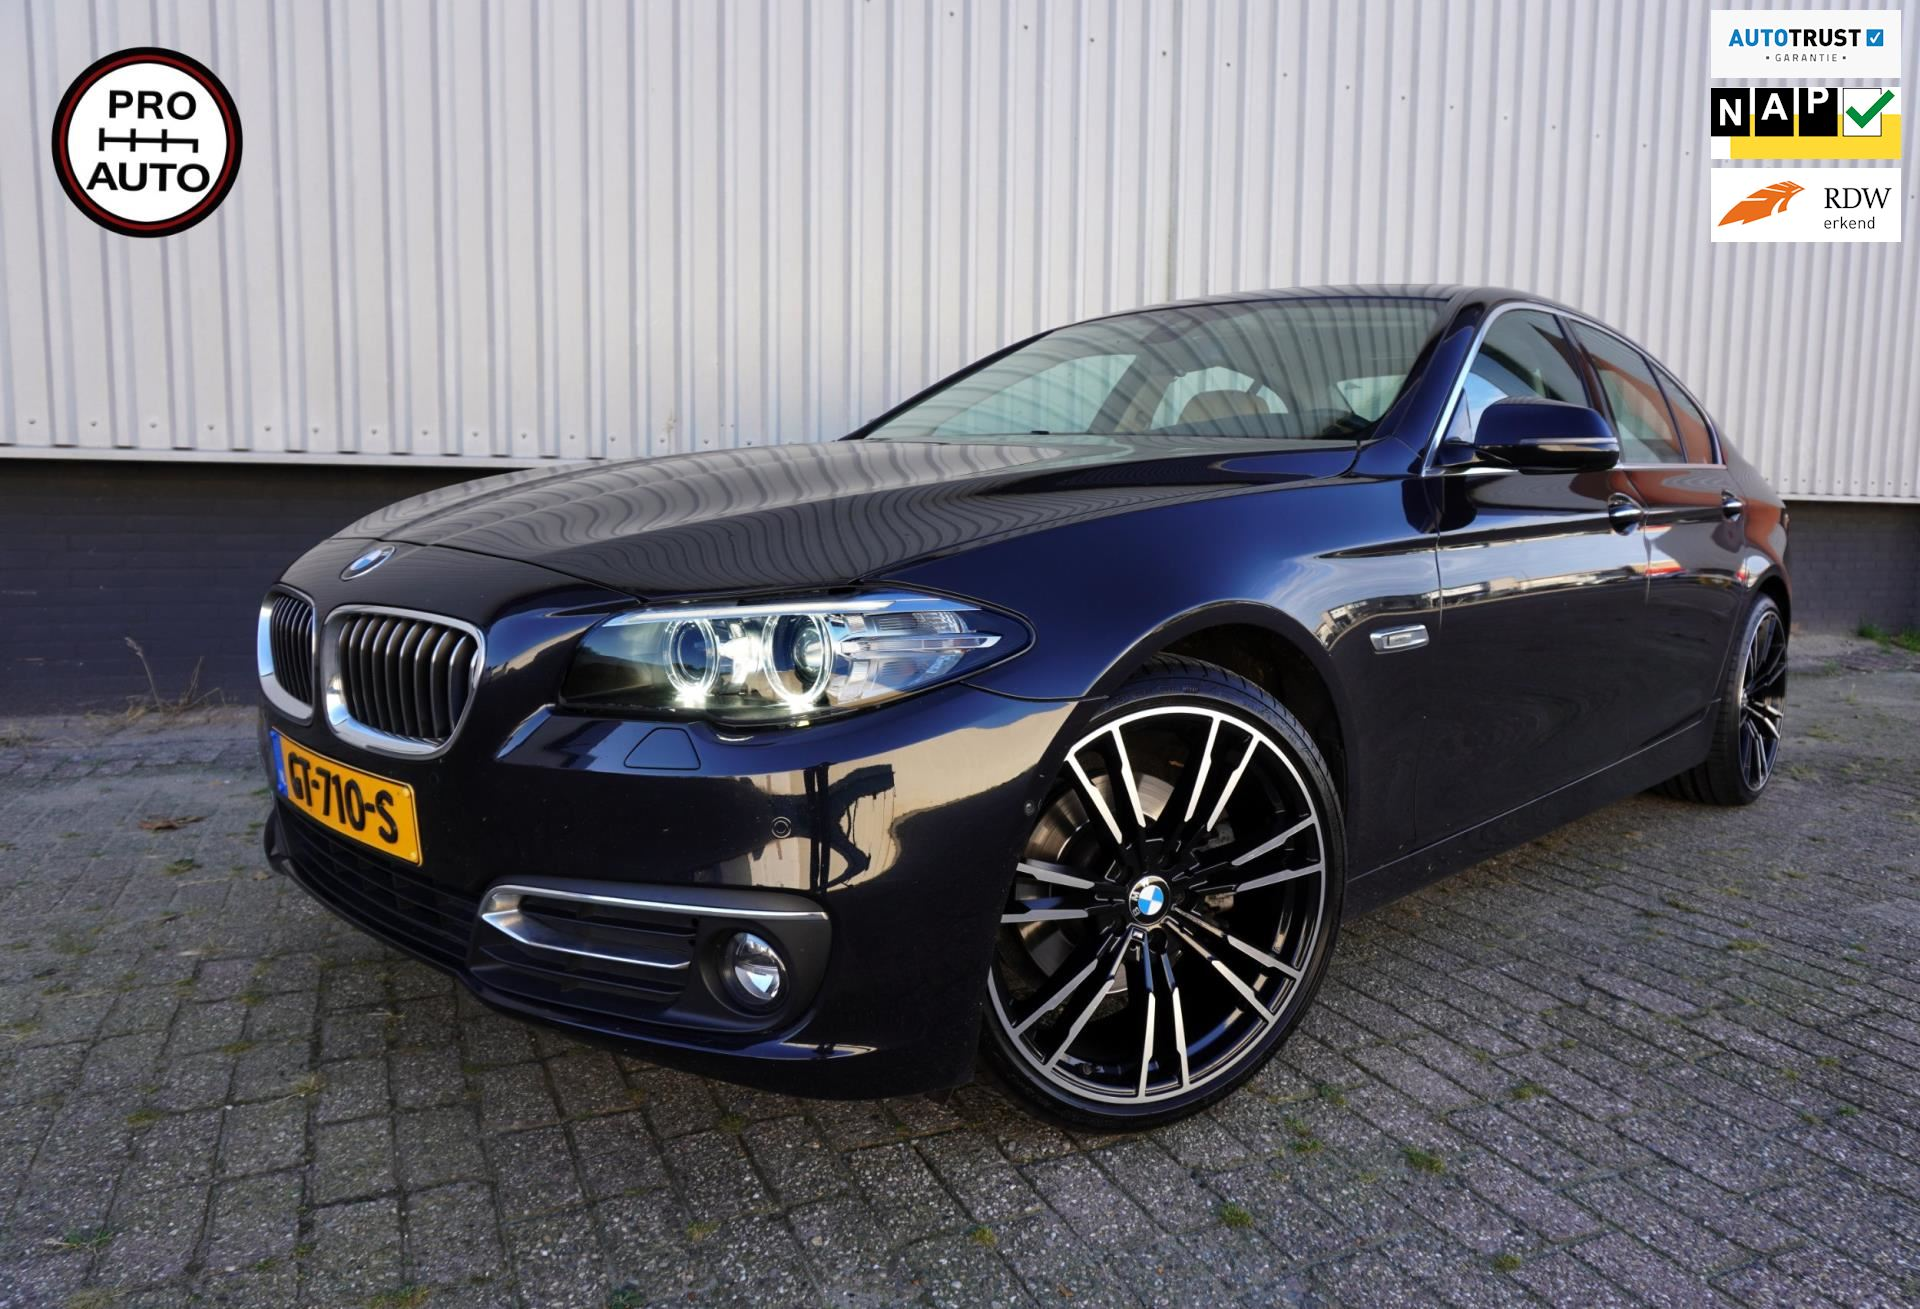 BMW 5-serie occasion - Proautoverkoop